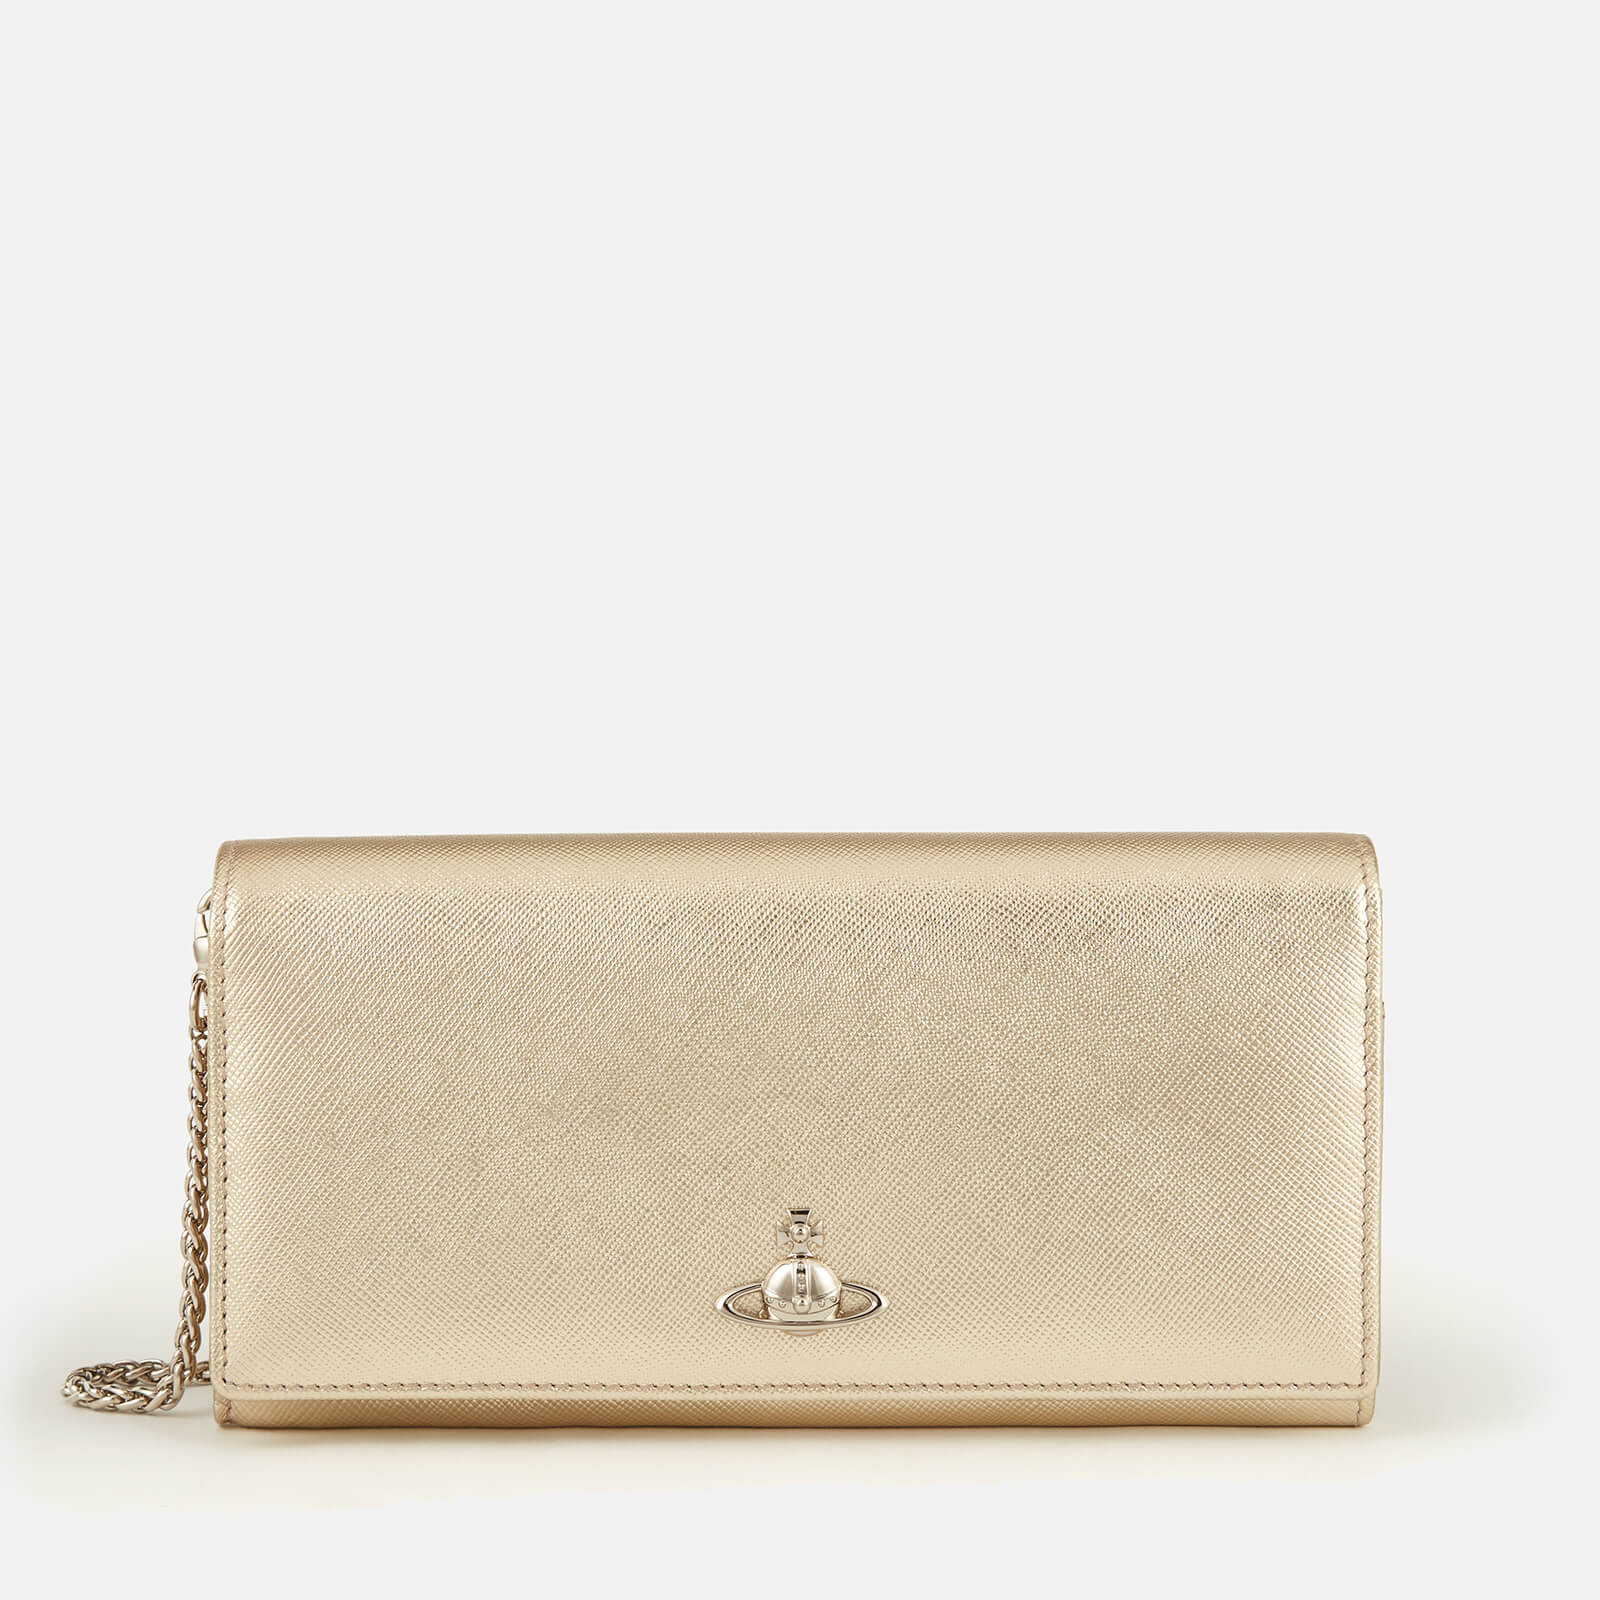 20b6fee85ee ... vivienne westwood women s pimlico long wallet with chain gold ...